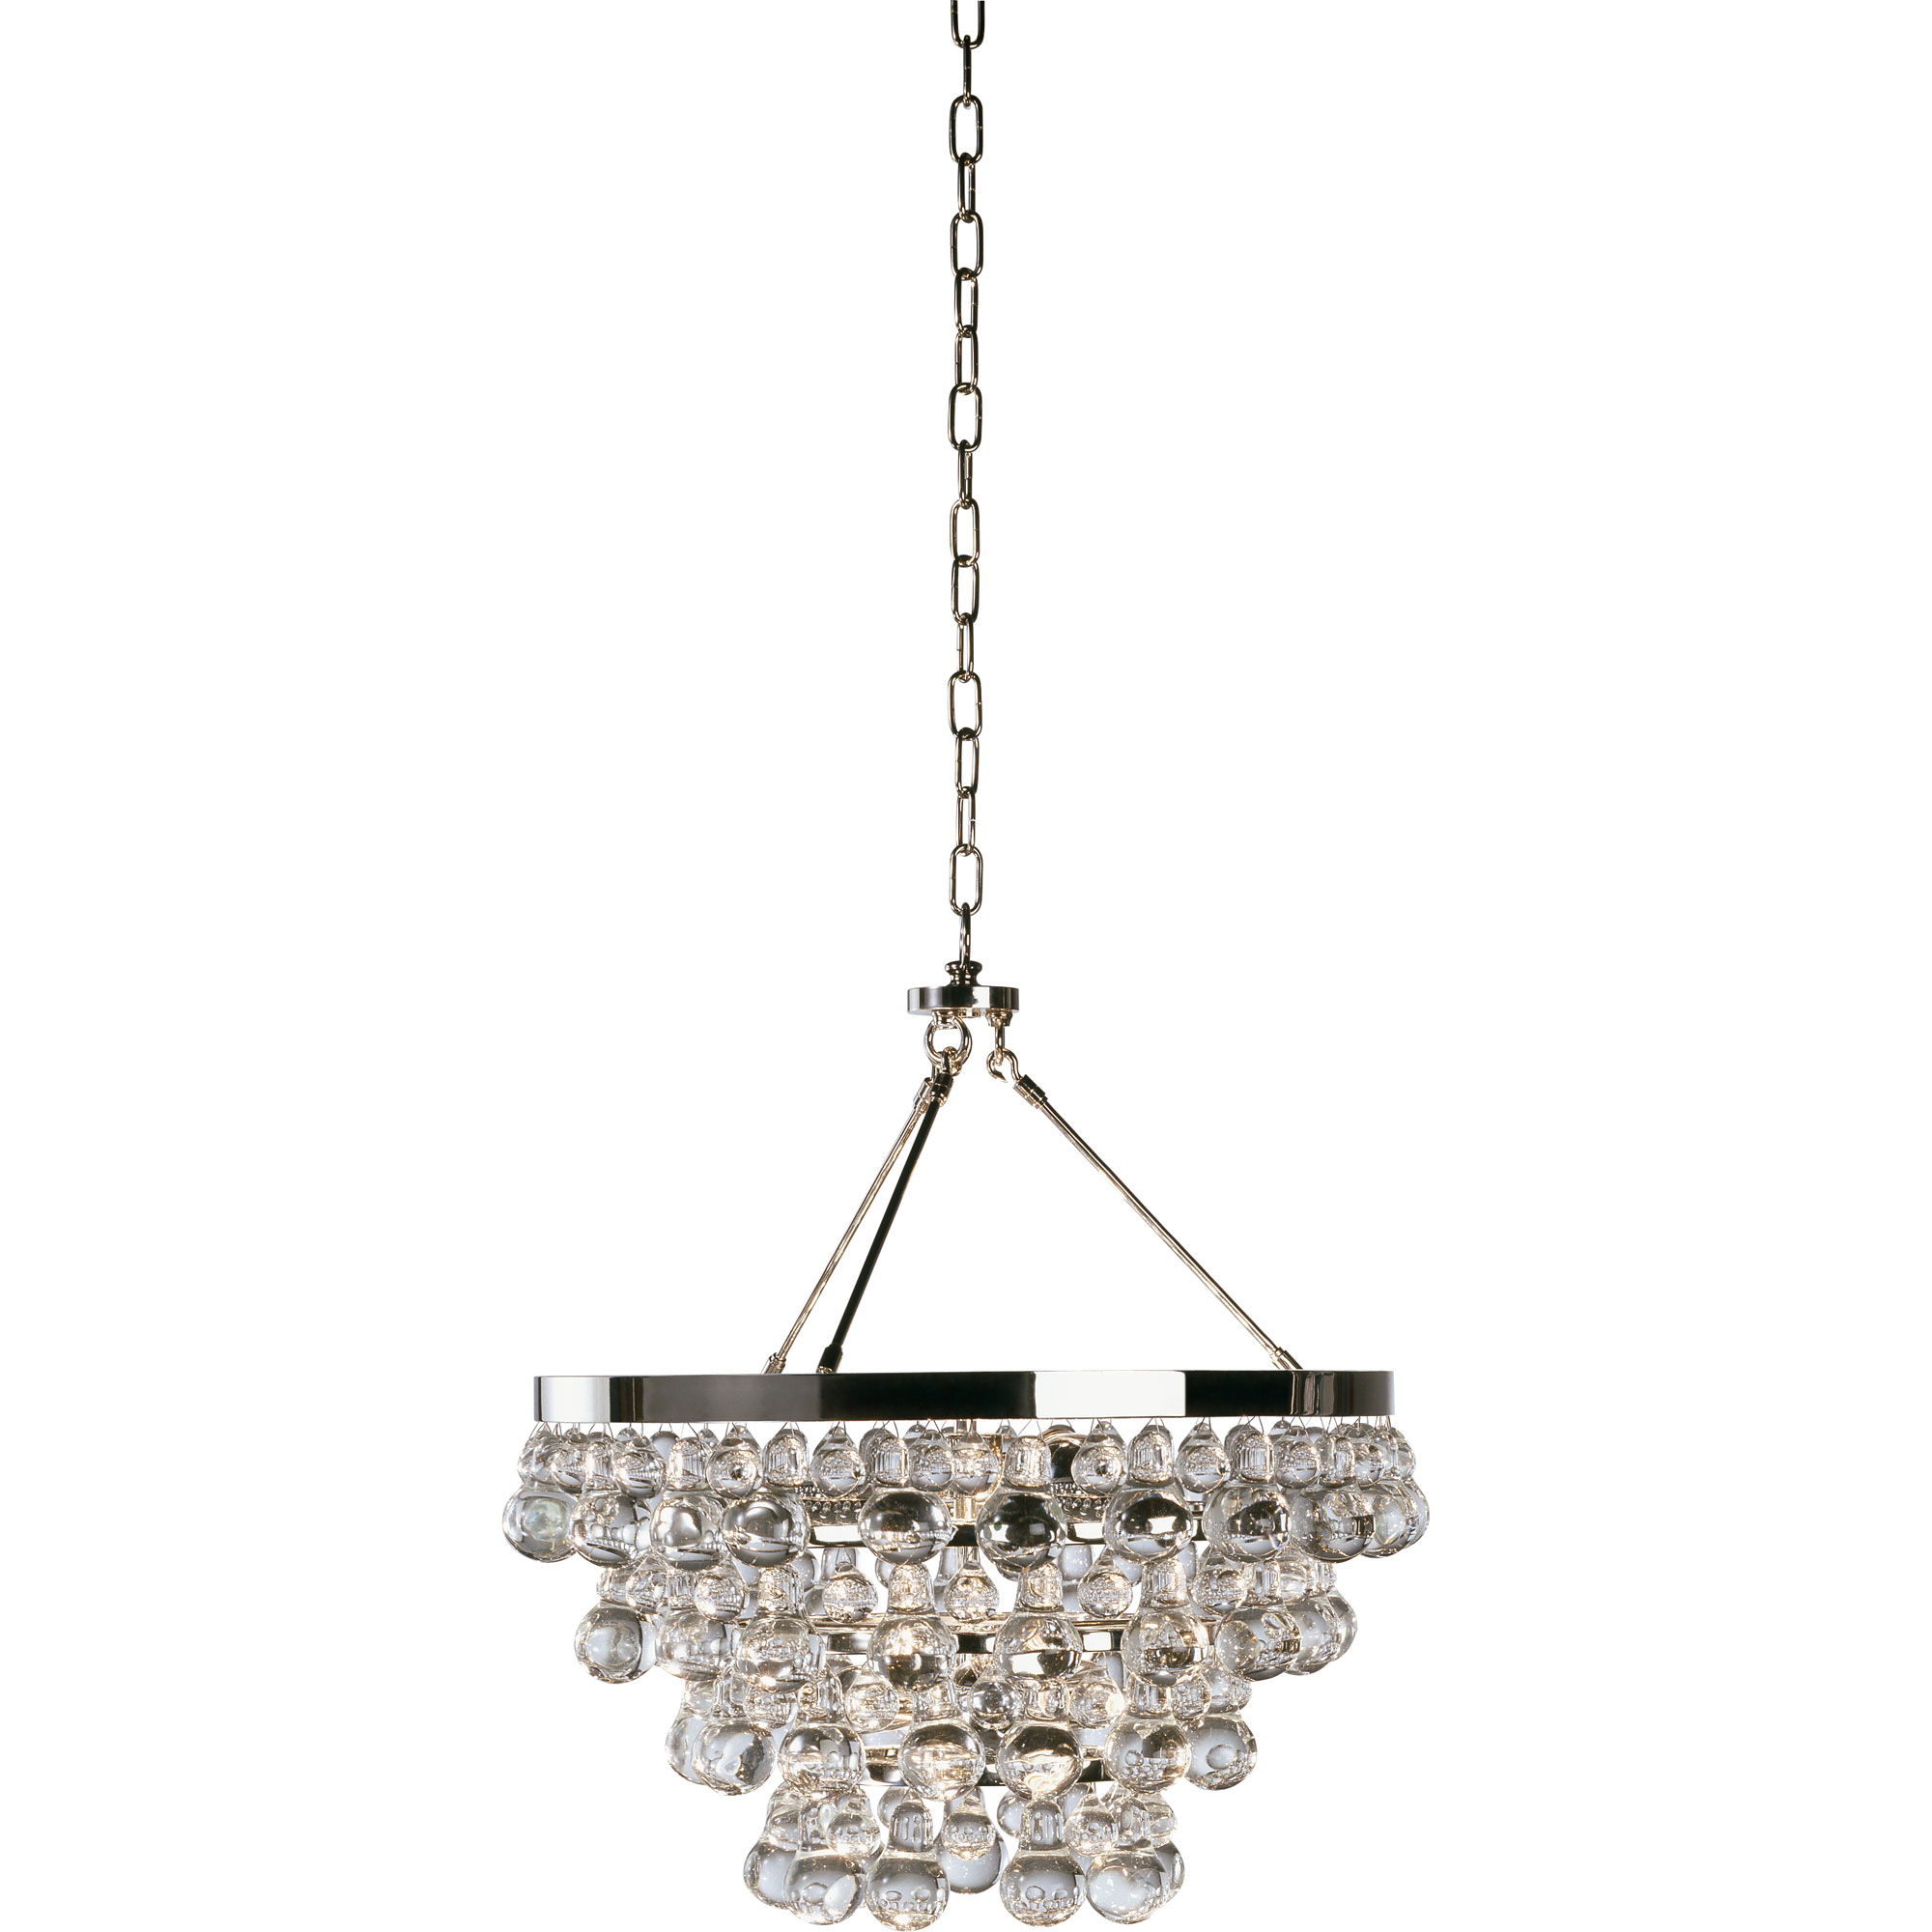 Bling Chandelier By Robert Abbey RA S1000